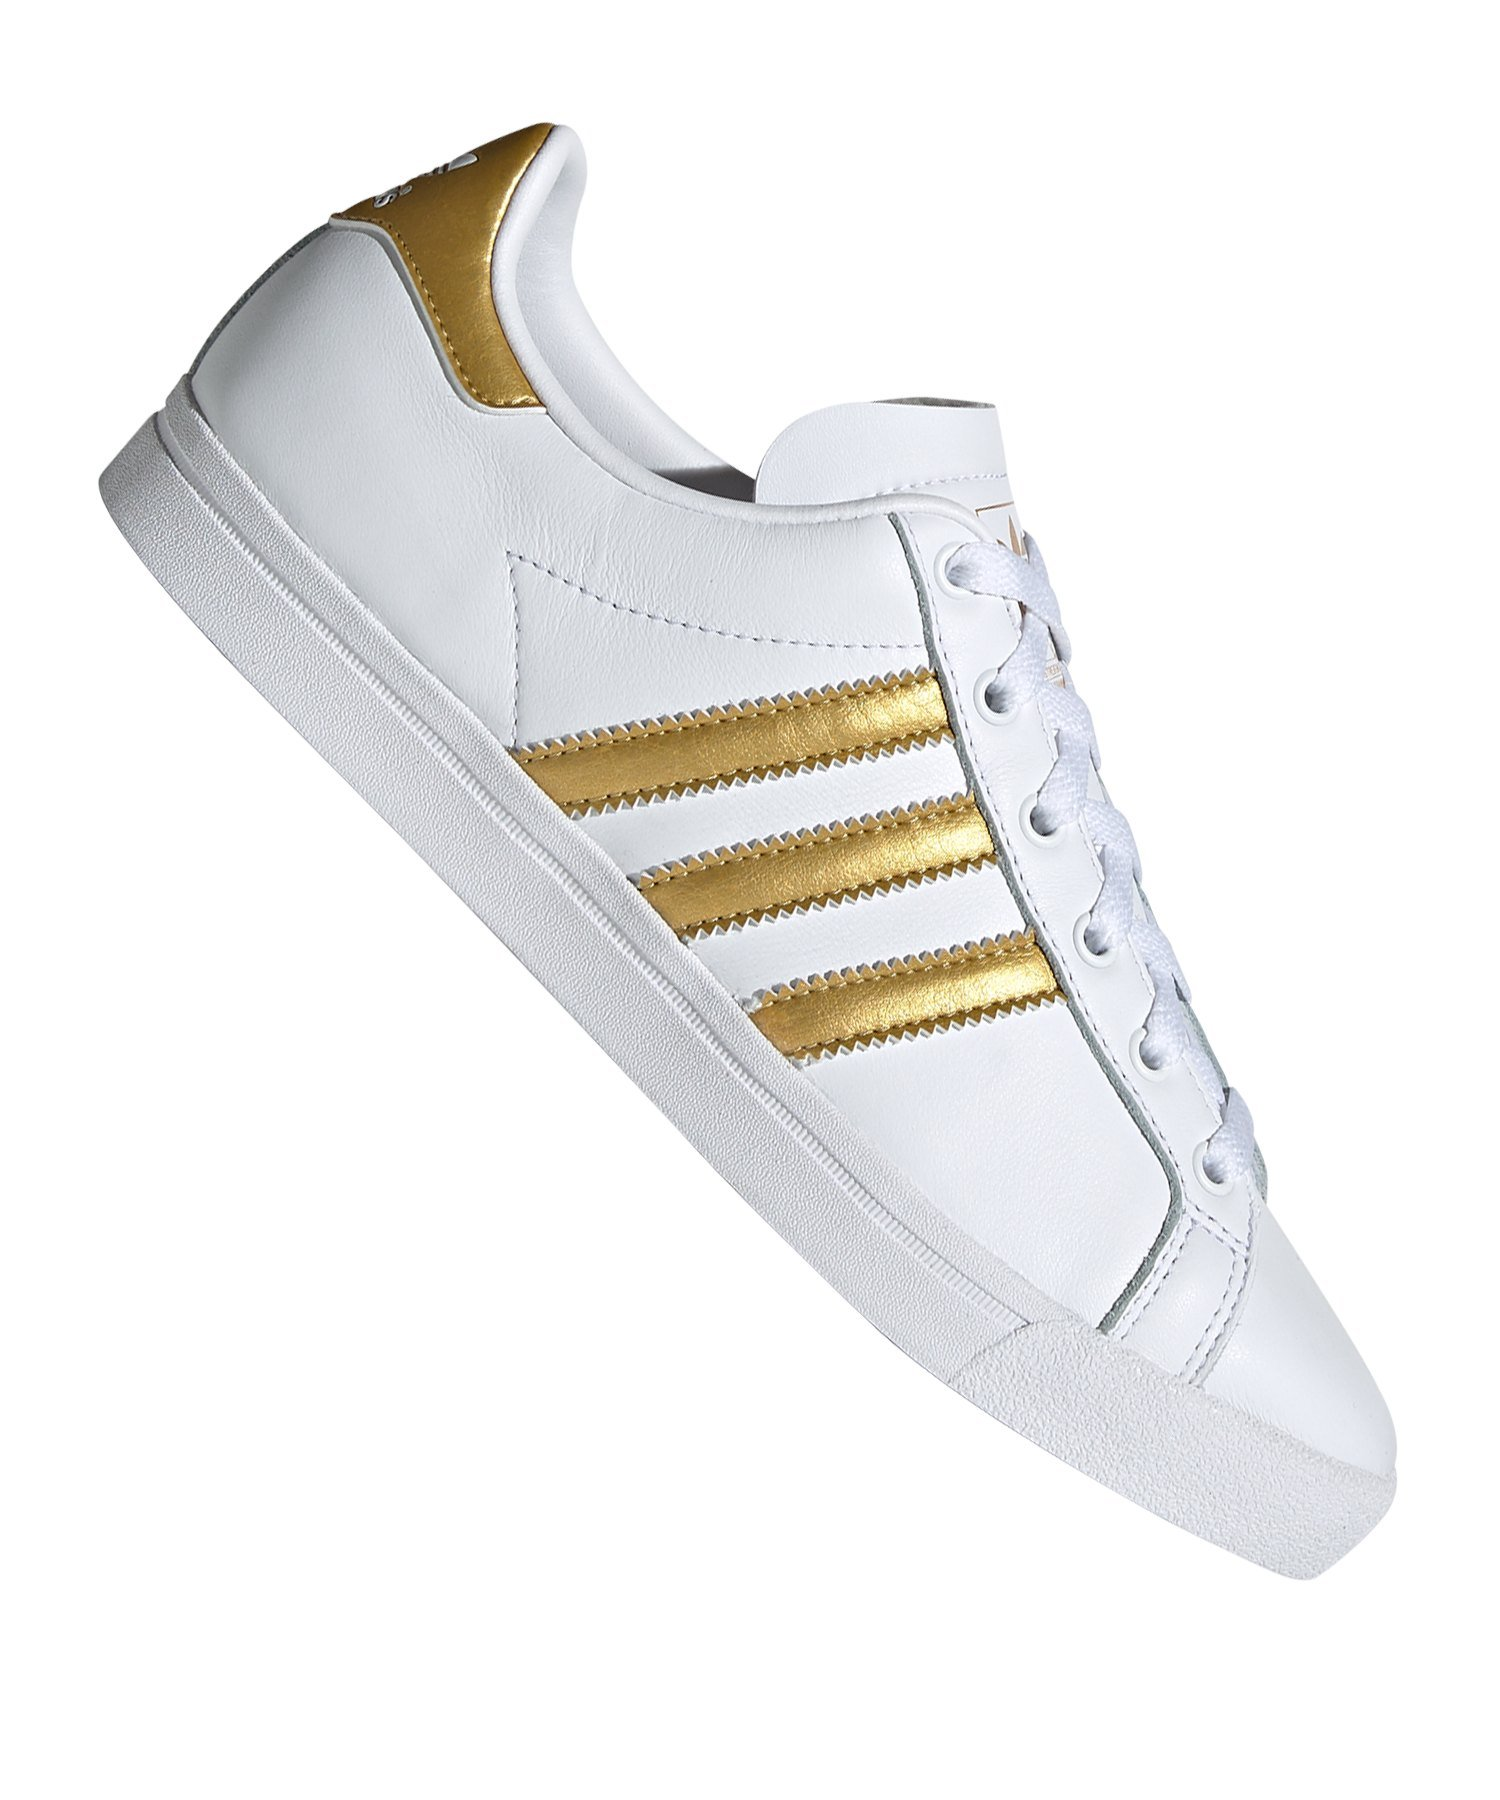 adidas Originals CS Sneaker Damen Weiss Gold